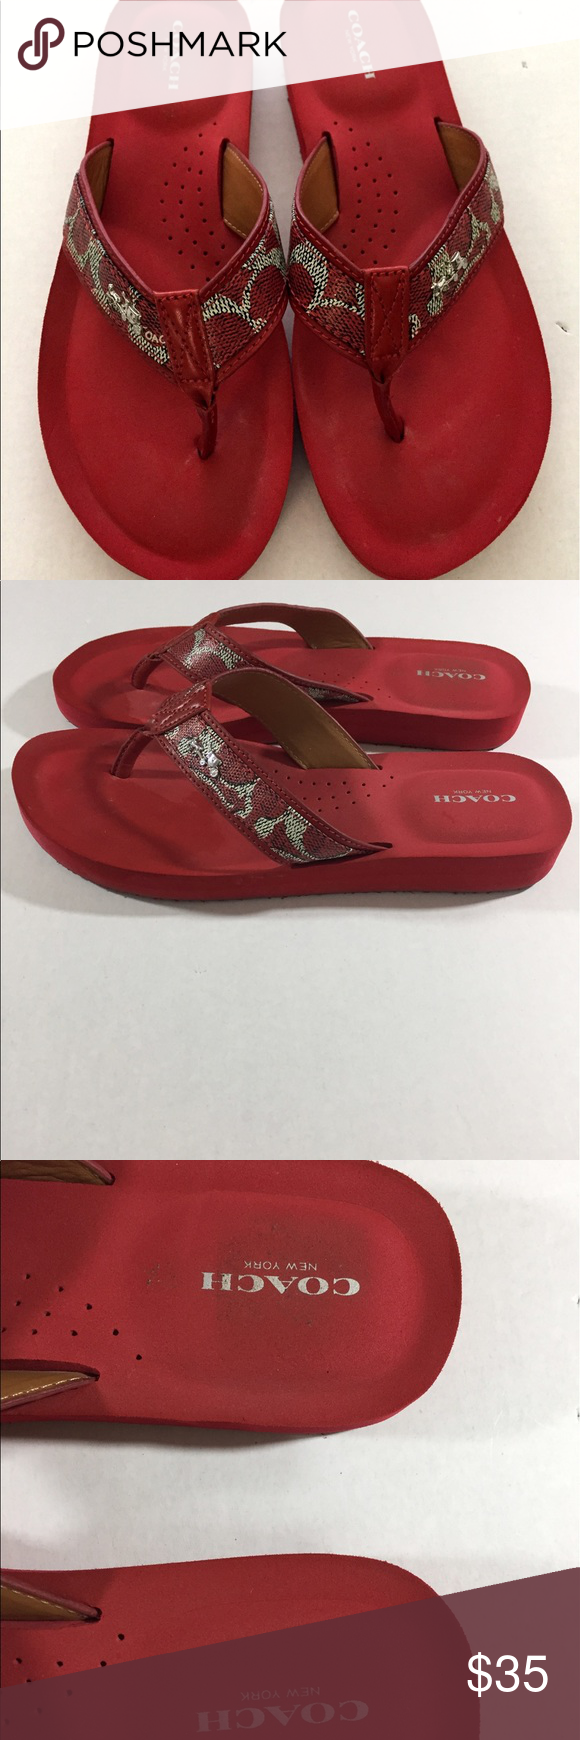 272ed02f8 Coach Women s Red Flip Flop Slides Size 9.5 B Pre-Owned gently used Red  Coach Flip Flop Slides Size 9.5 B Coach Shoes Slippers